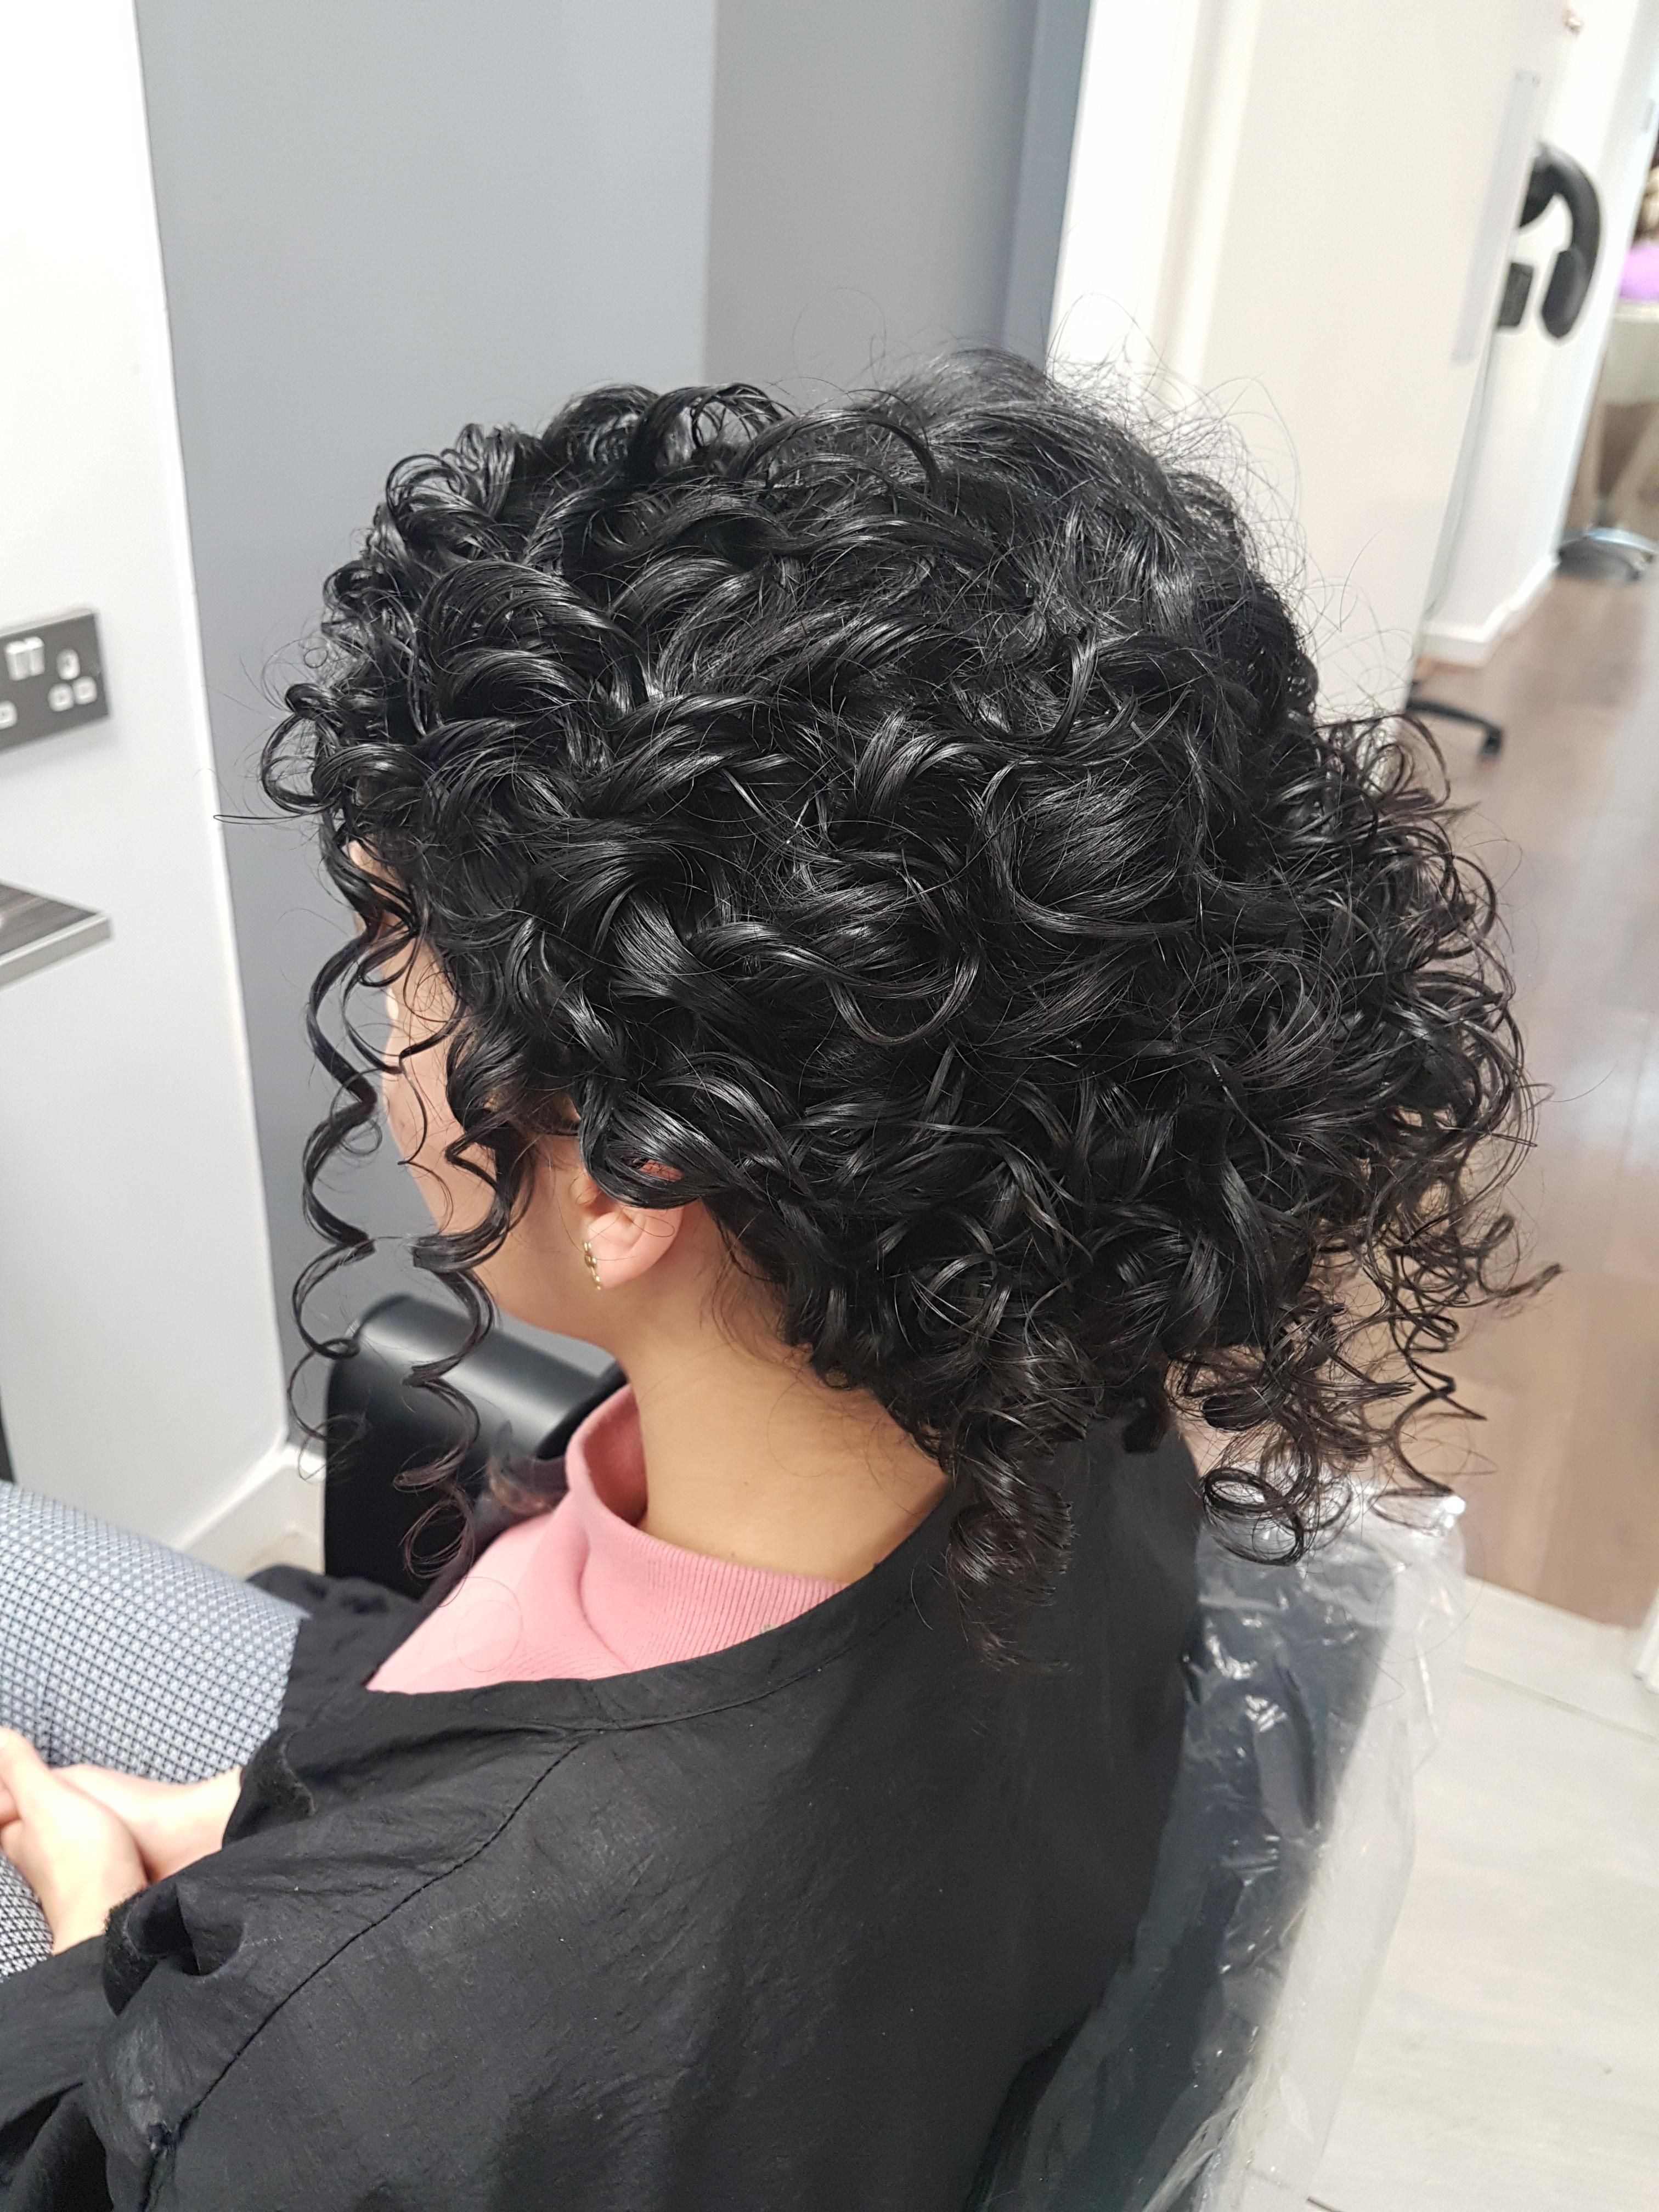 Trying Out A Natural Curly Hair Style For My Wedding Curlyhair